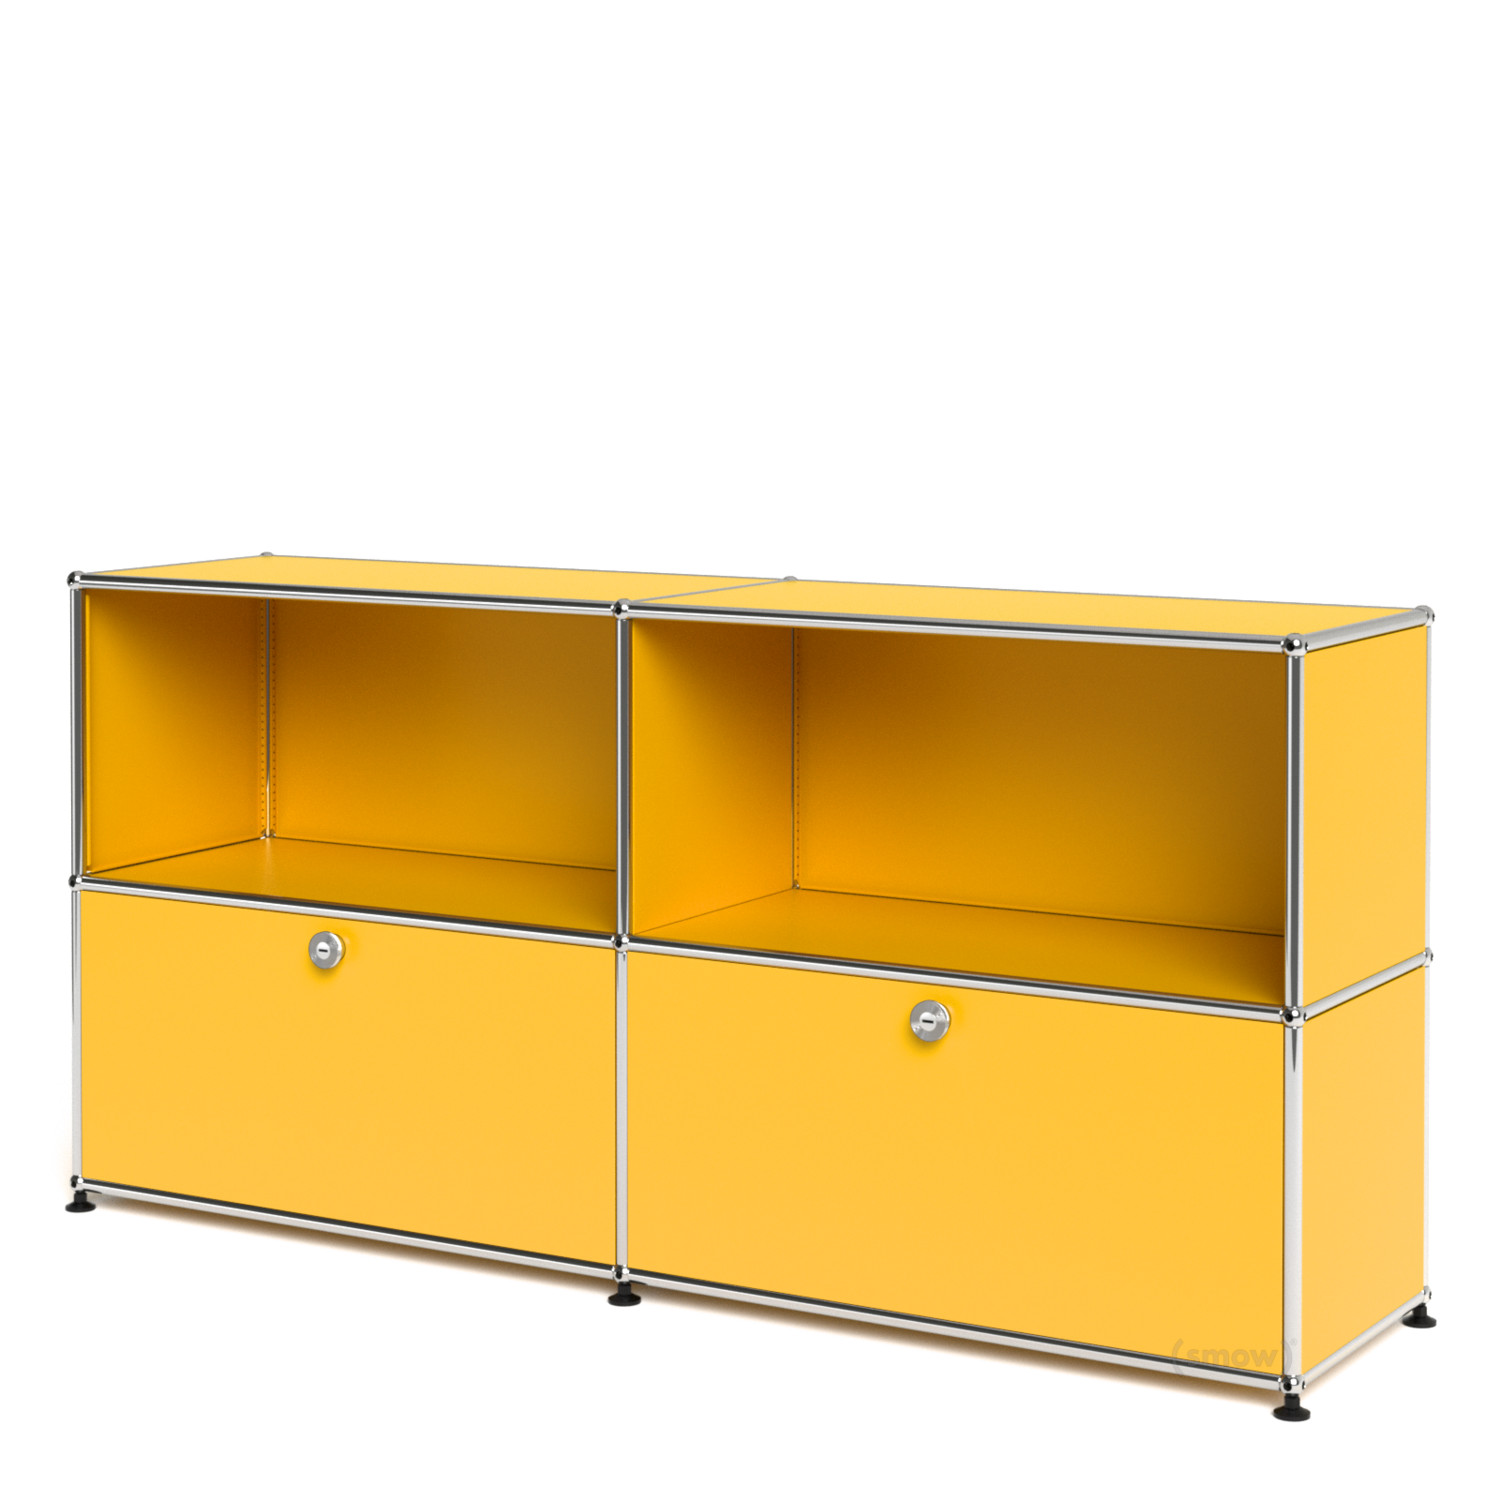 Usm haller sideboard l customisable golden yellow ral for Sideboard usm